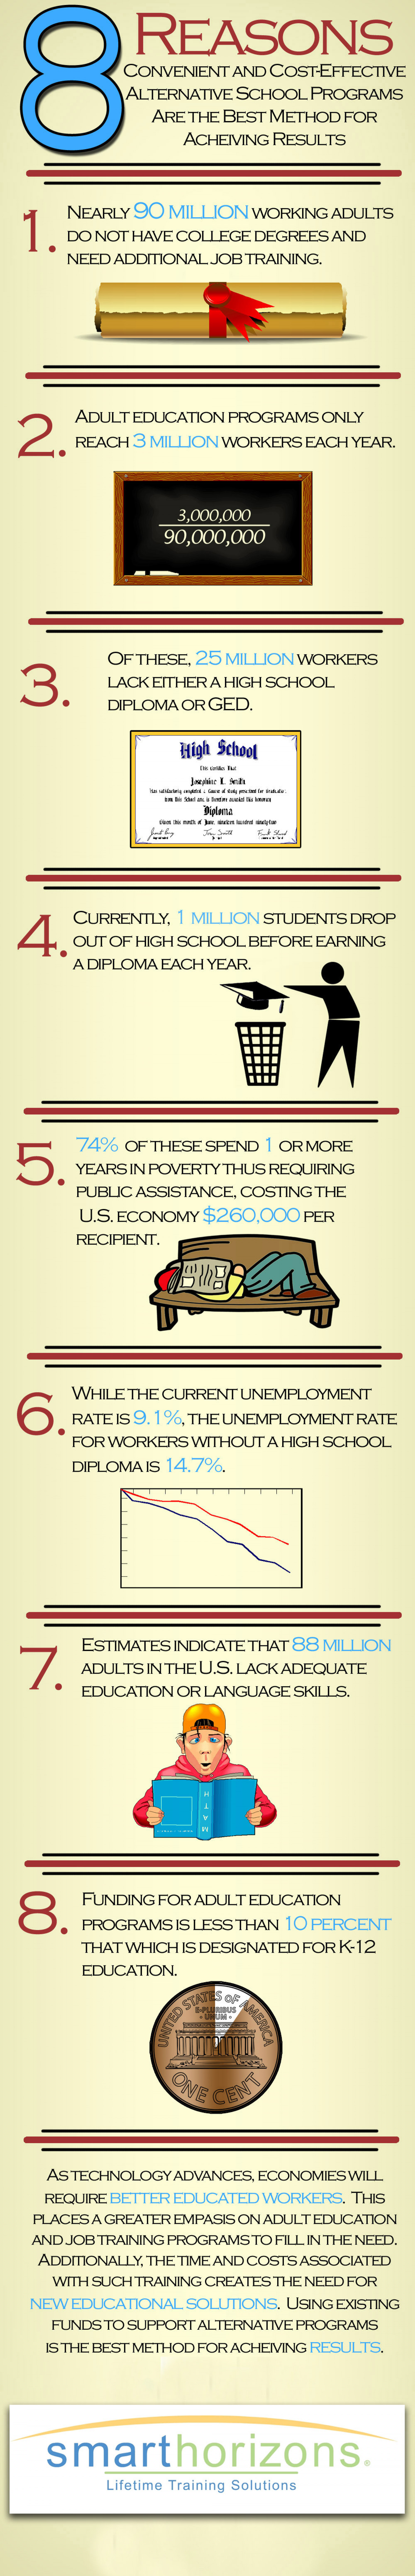 8 Reasons for cost effective alternative school programs Infographic